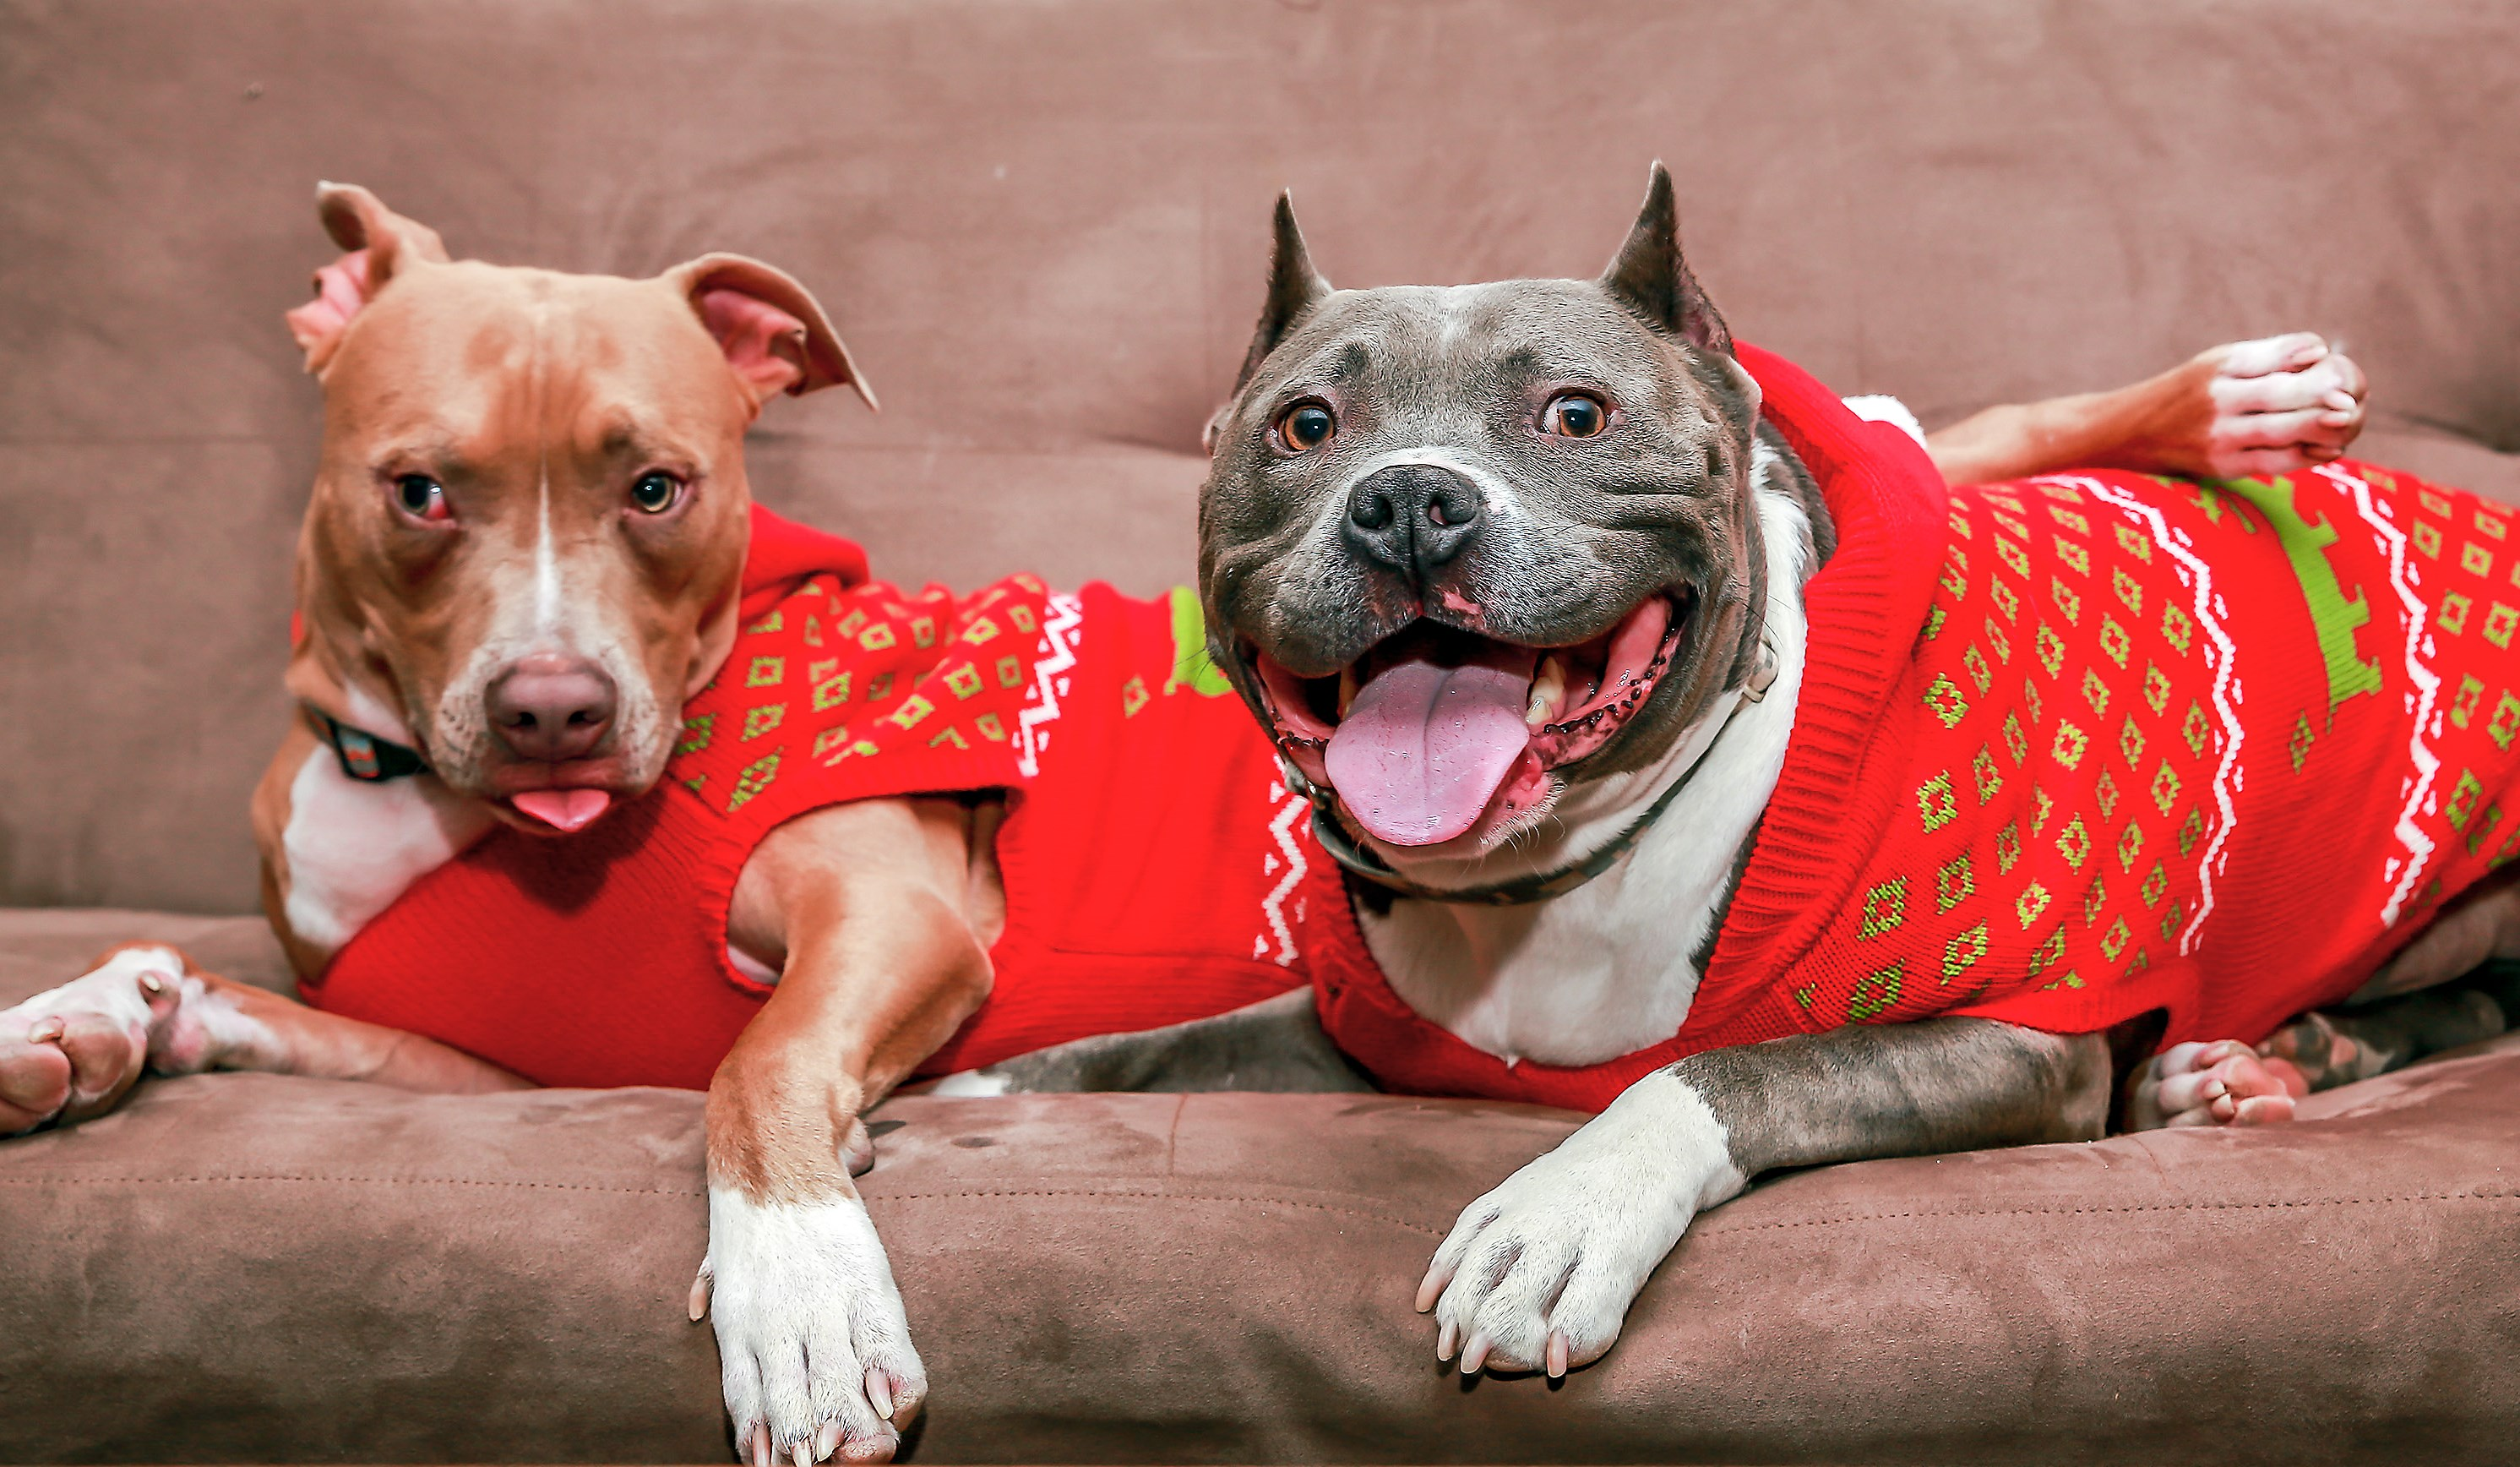 Ducky, right, and Flynn are two Court Case Dogs who have found a home with Christina and Josh Francy of Downers Grove. (Josh Feeney/Safe Humane Chicago)